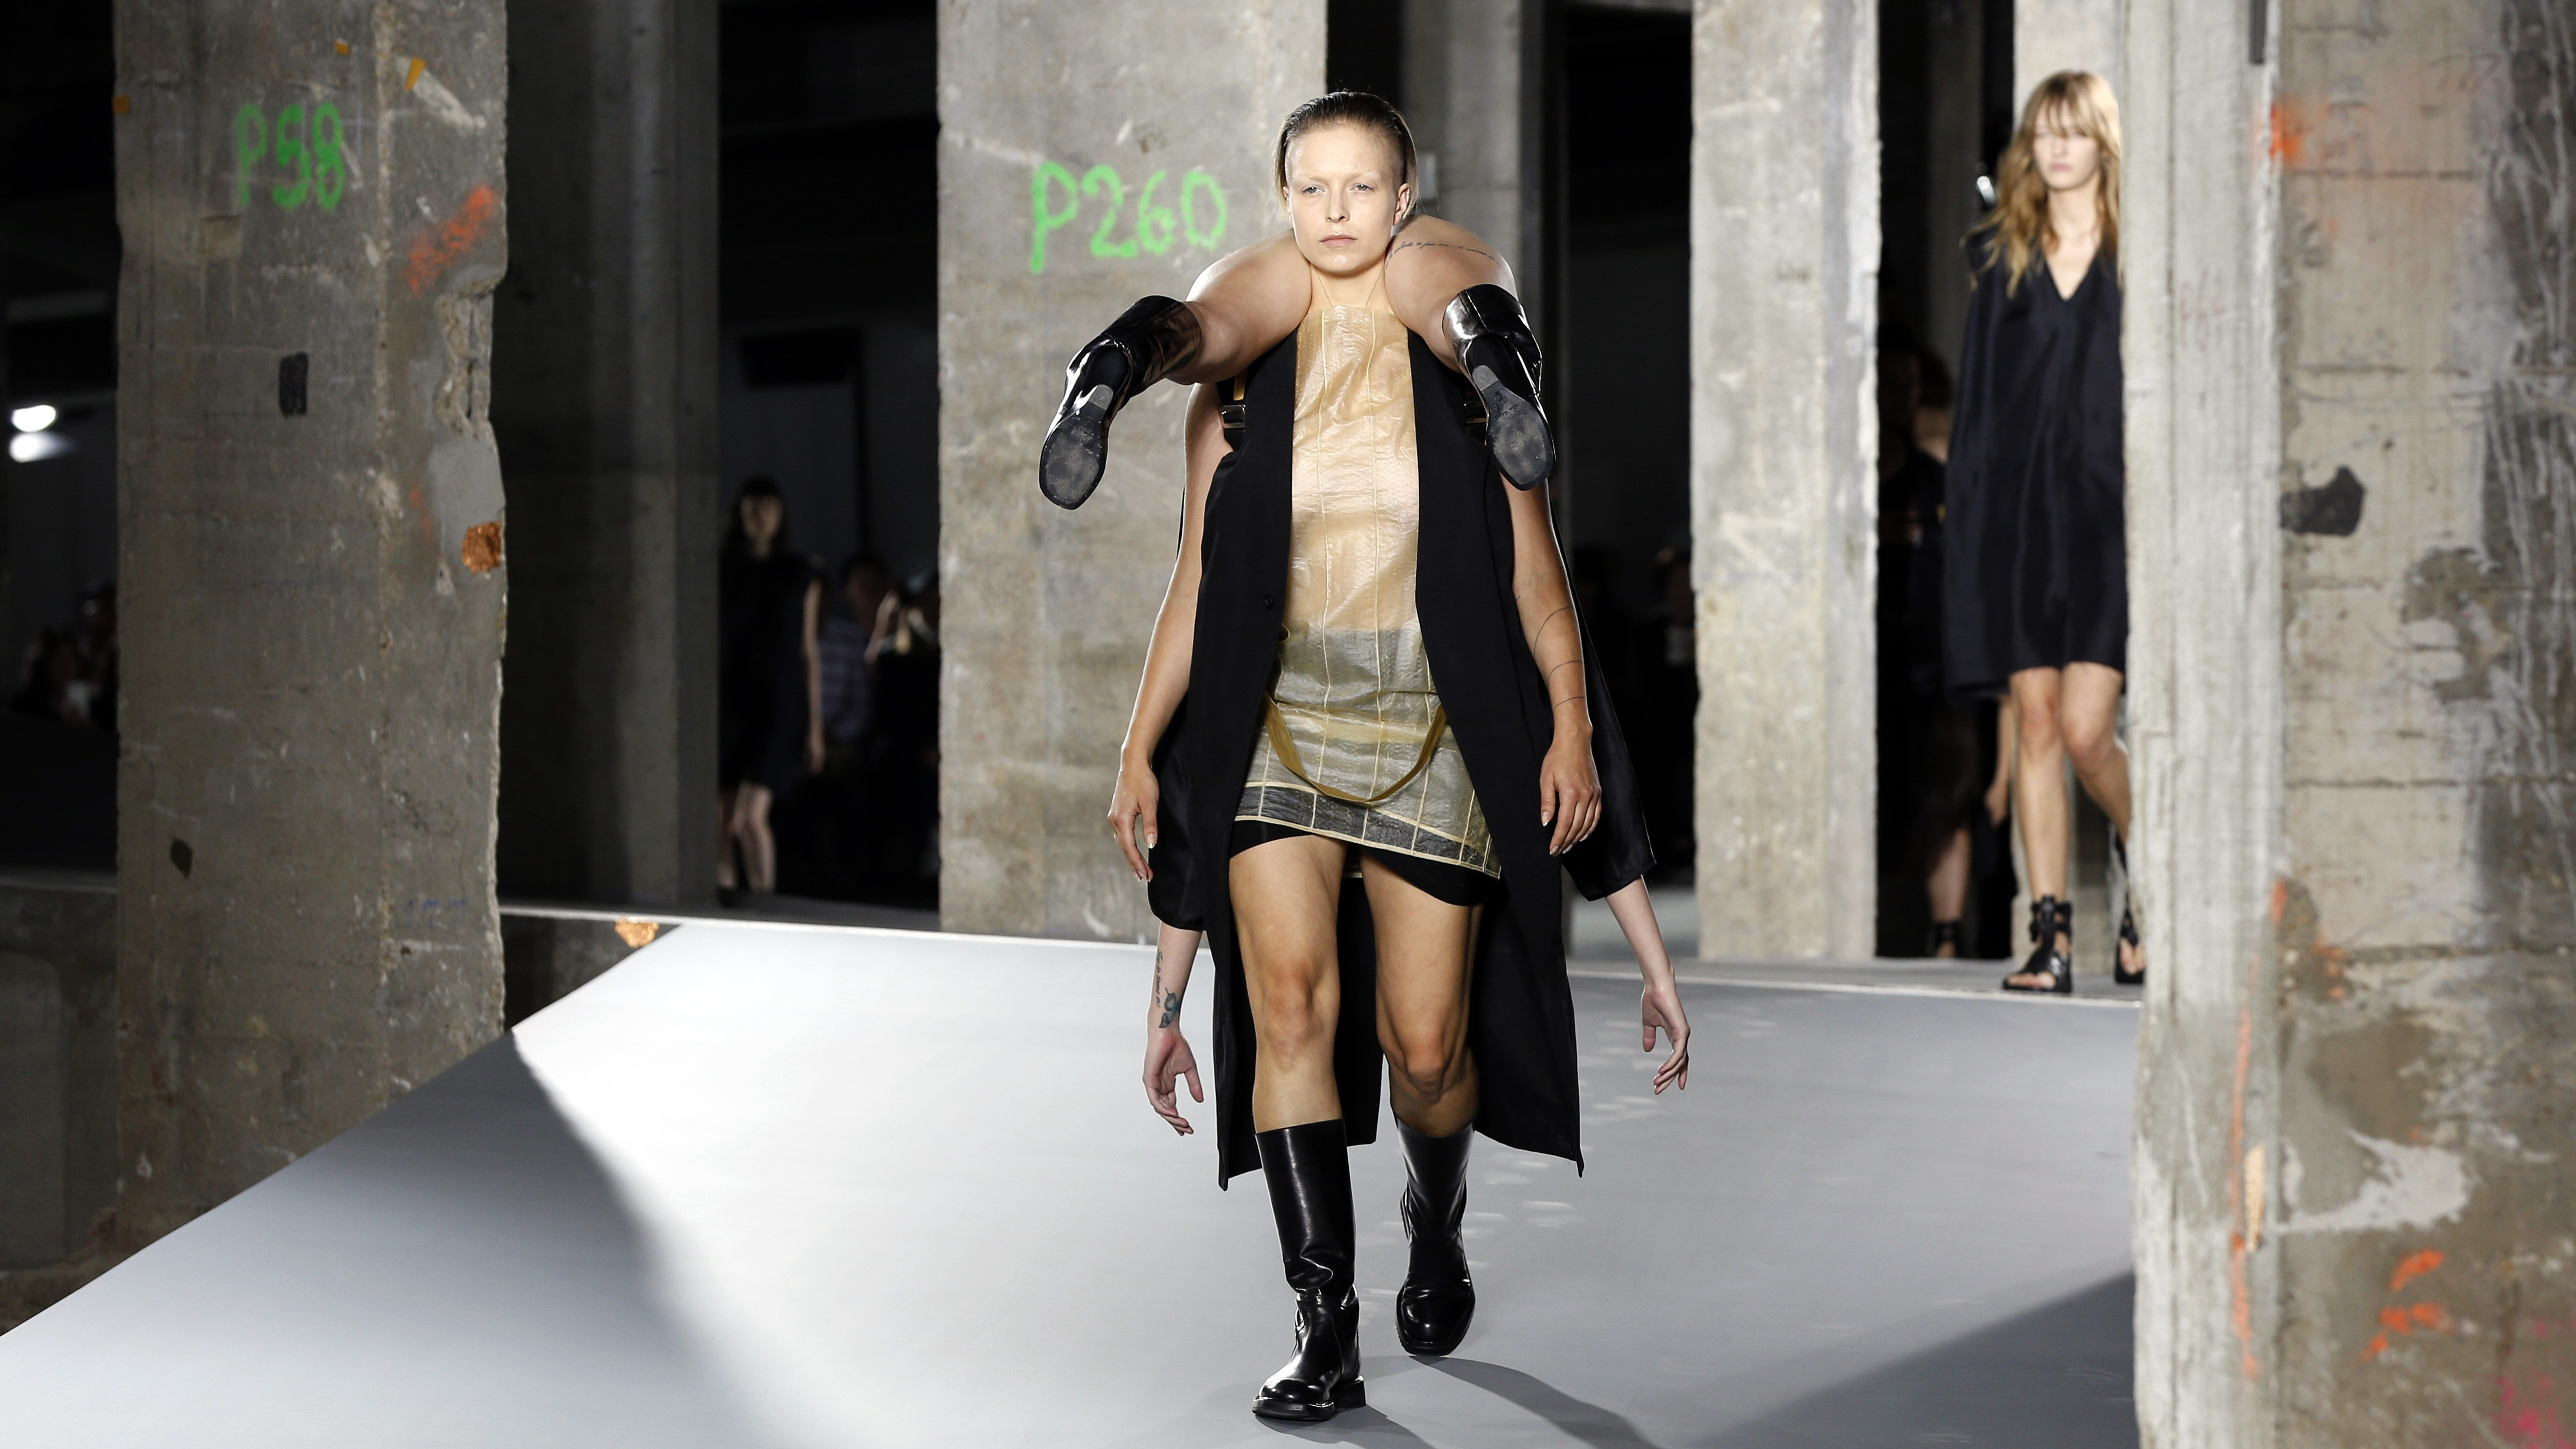 Models present creations by Rick Owens during the 2016 Spring/Summer ready-to-wear collection fashion show, on October 1, 2015 in Paris.